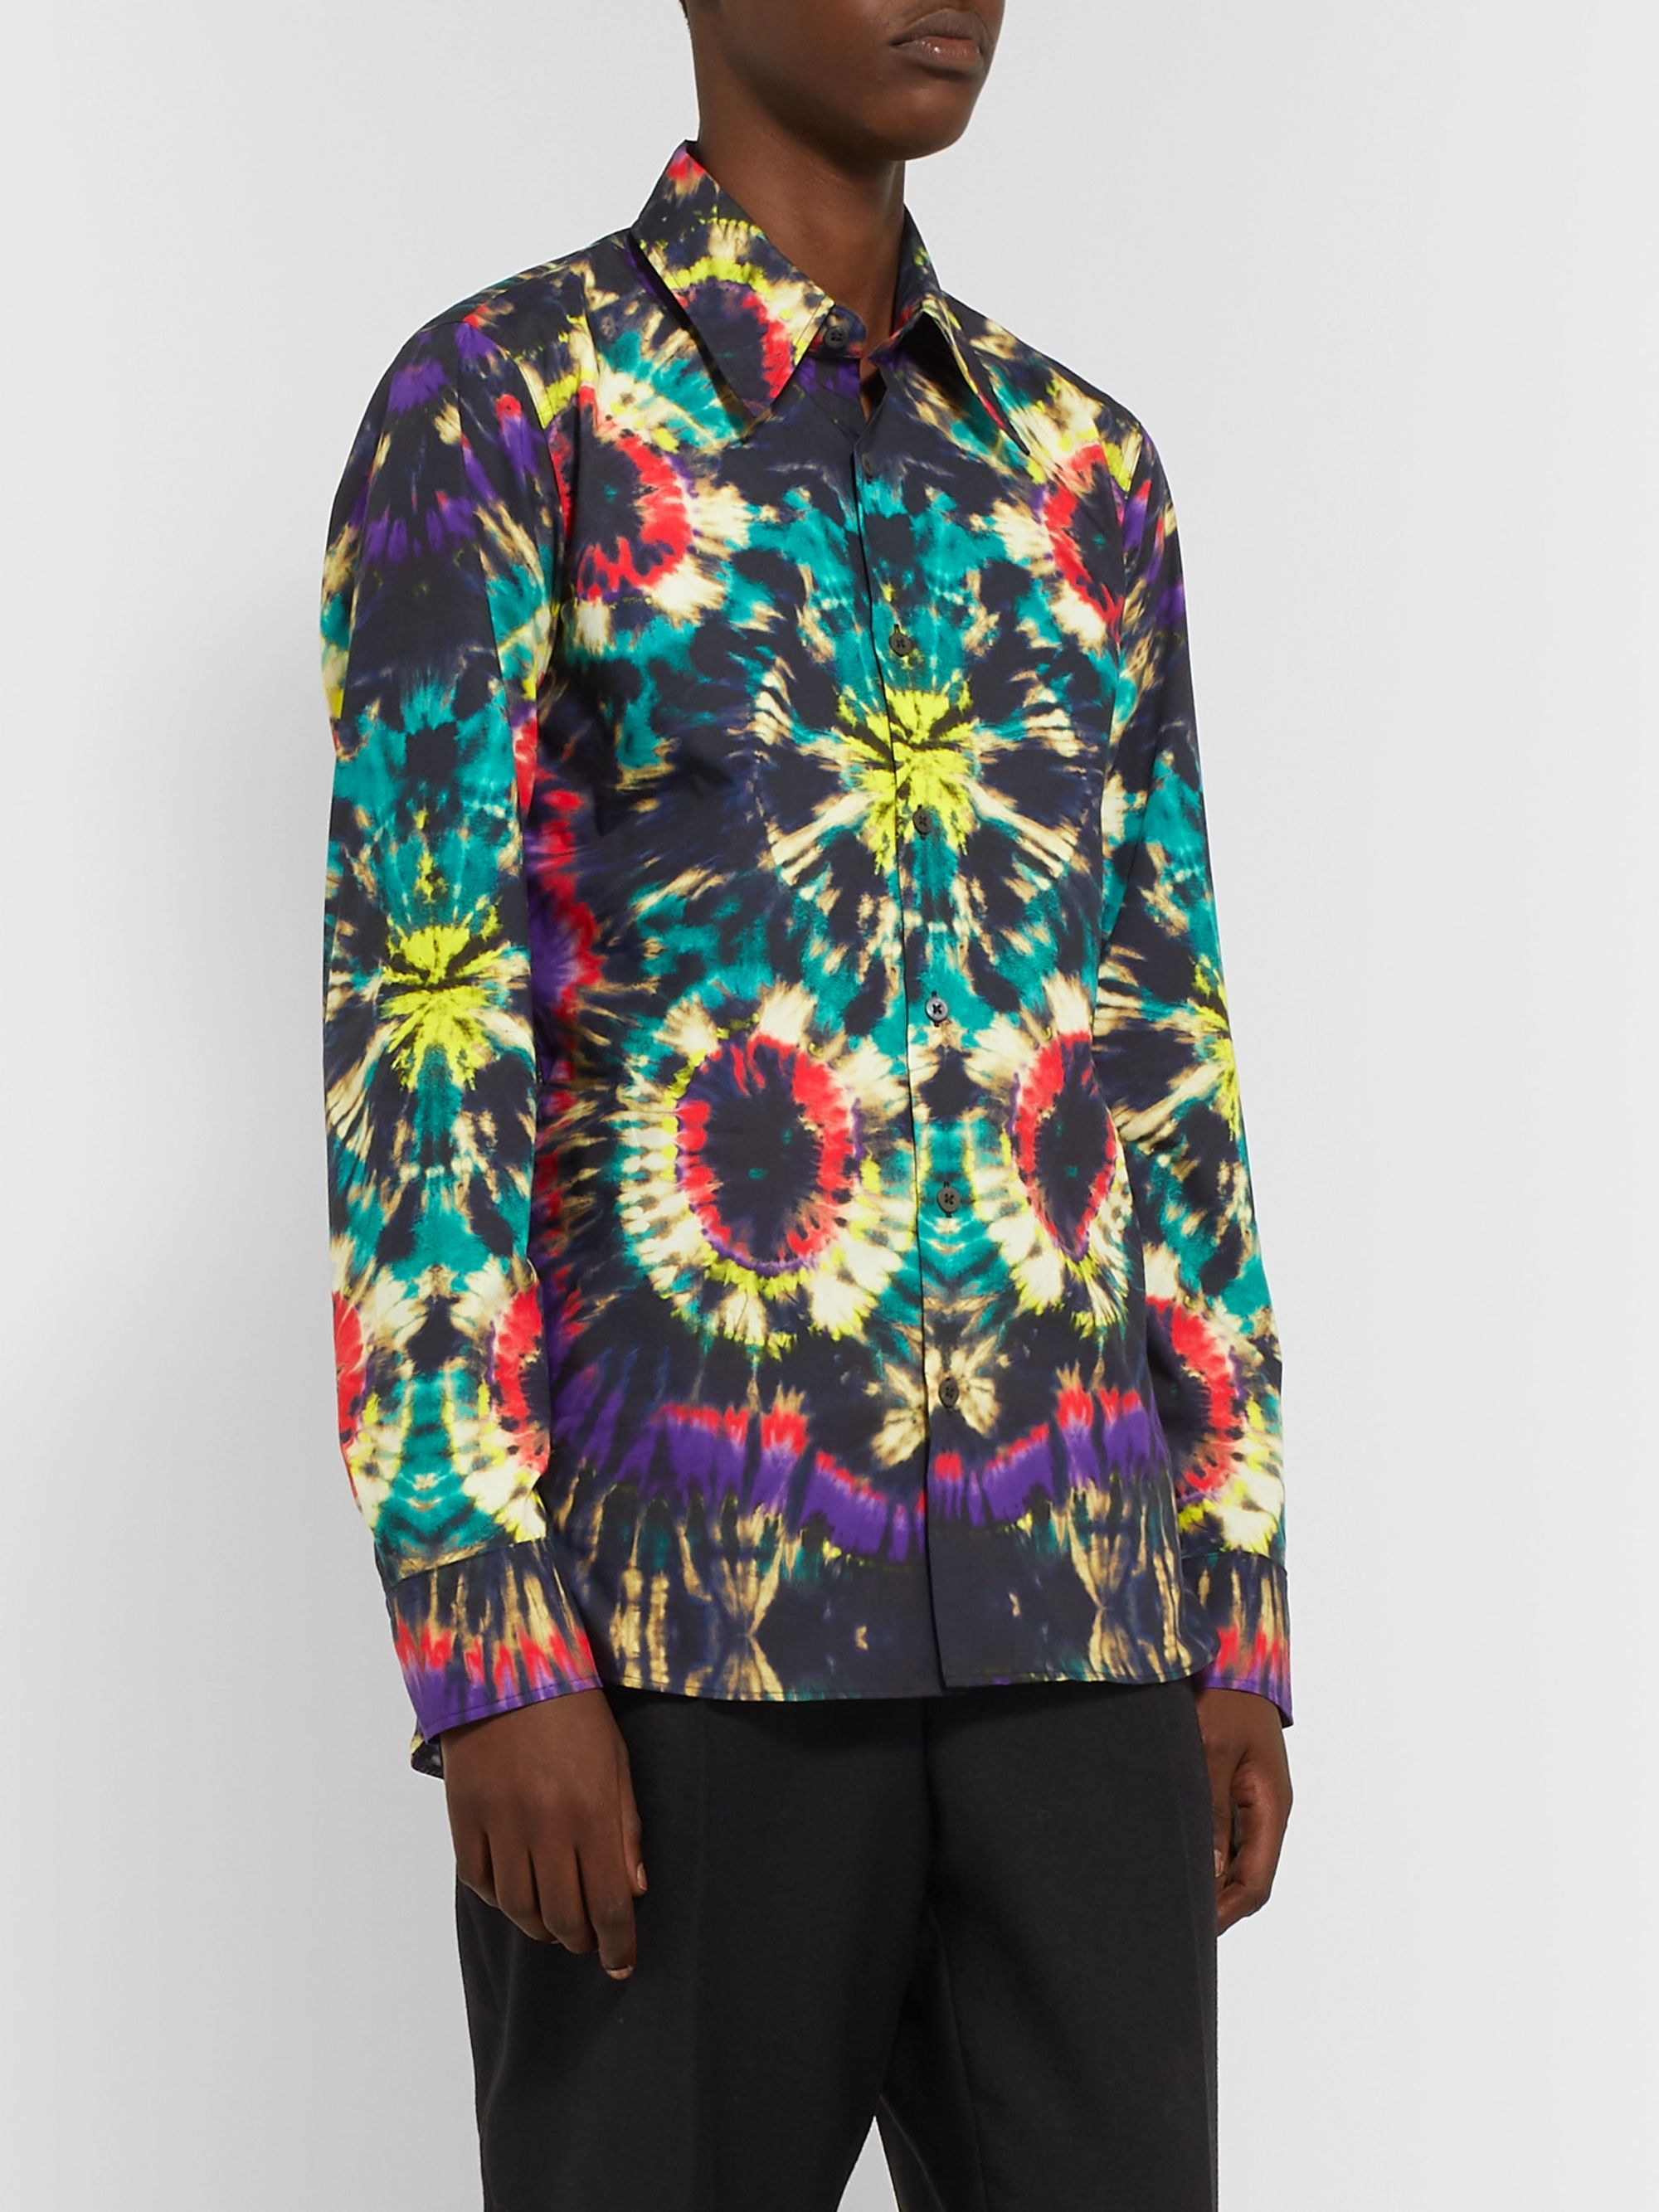 Dries Van Noten Tie-Dyed Cotton-Poplin Shirt